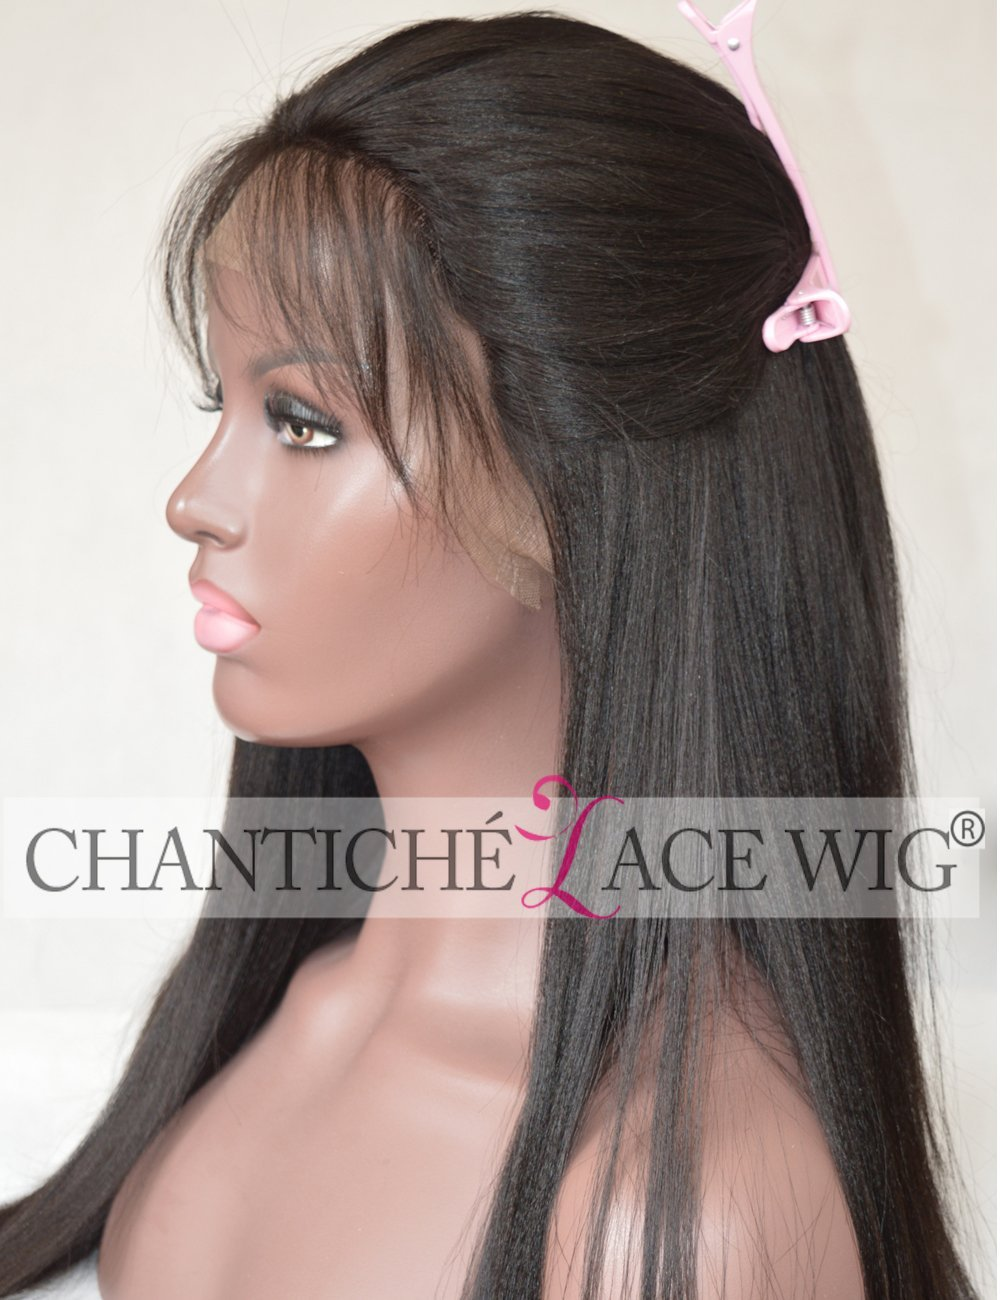 Chantiche Brazilian Remy Human Hair Wigs Yaki Straight Silk Top Lace Front Wigs with Baby Hair 150% Density 12inch #1B Medium Cap Size Medium Brown Lace